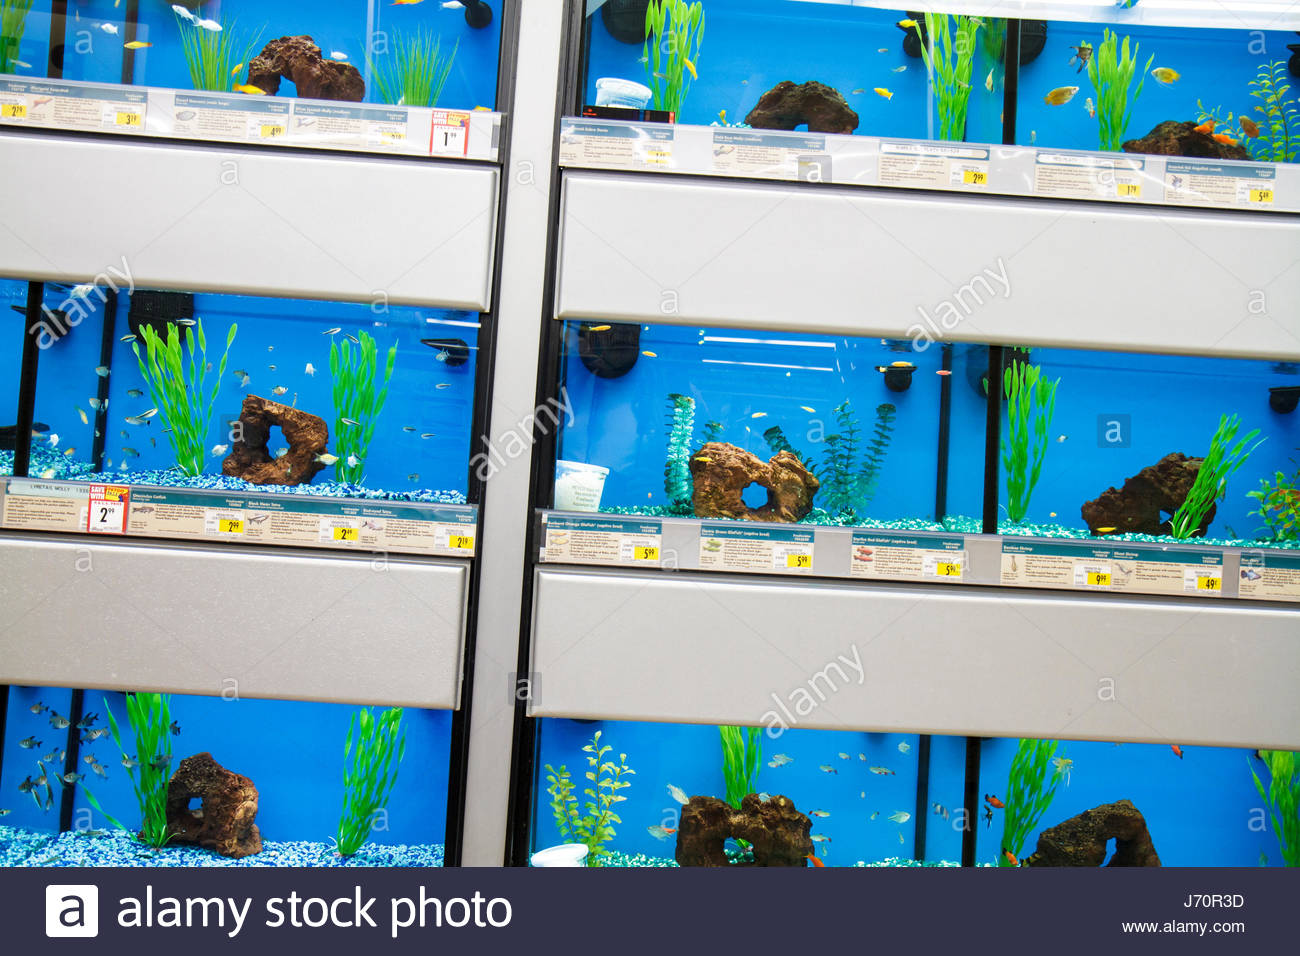 Petco stock photos petco stock images alamy for Petco fish for sale